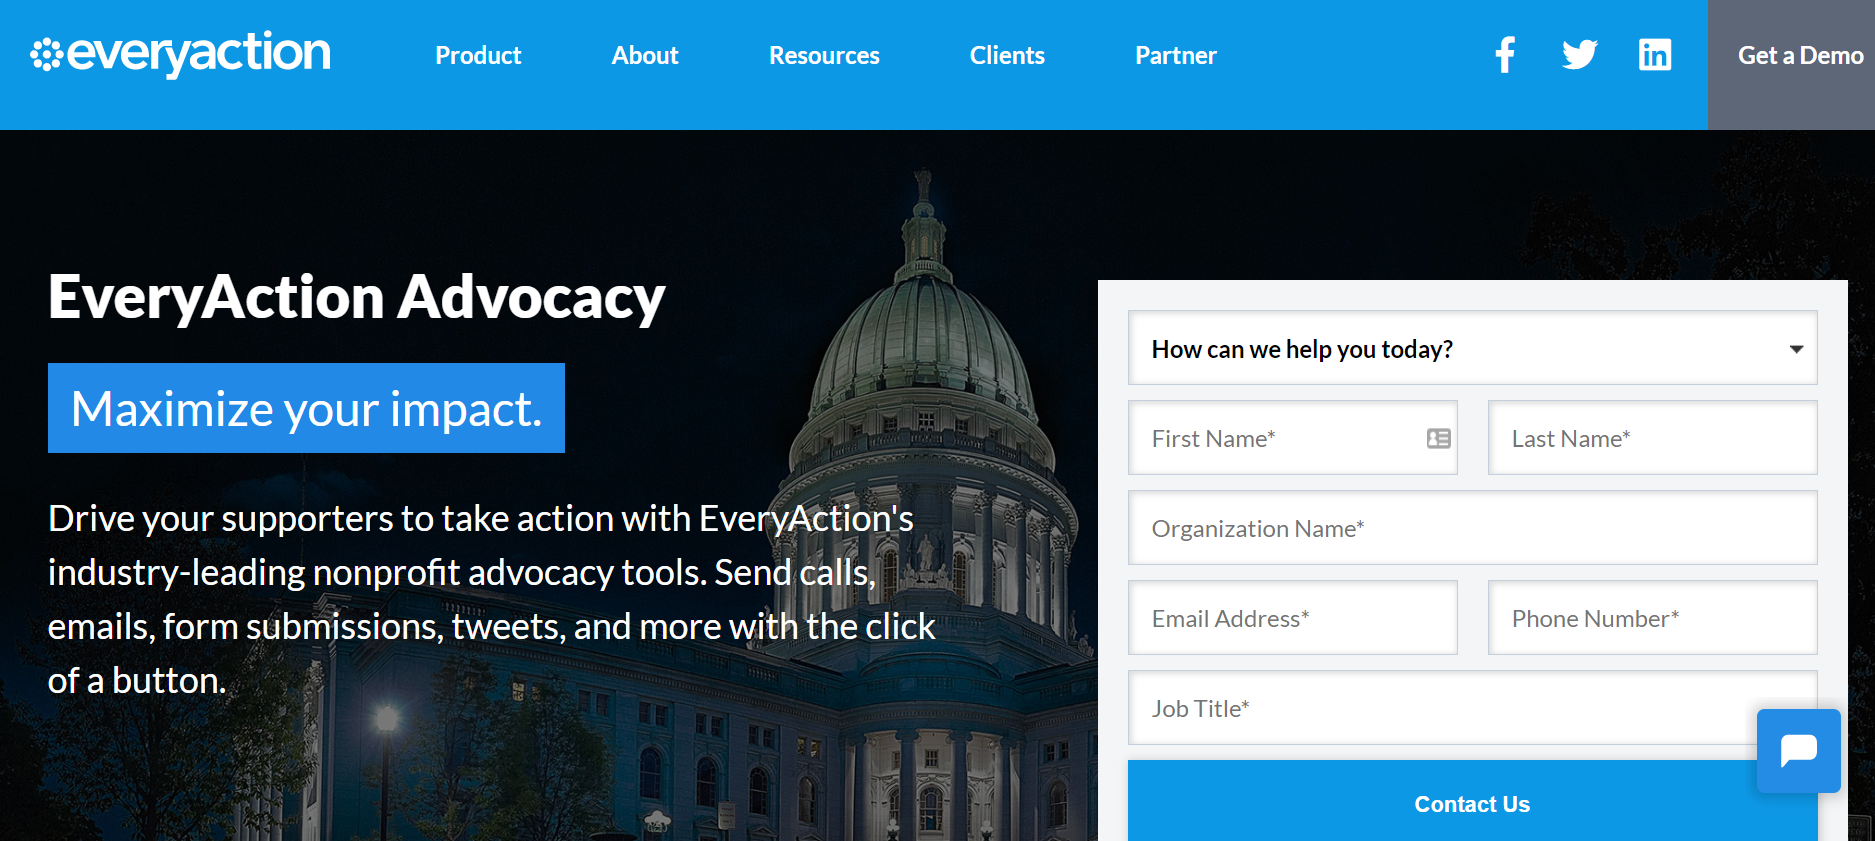 EveryAction Advocacy Software homepage screenshot